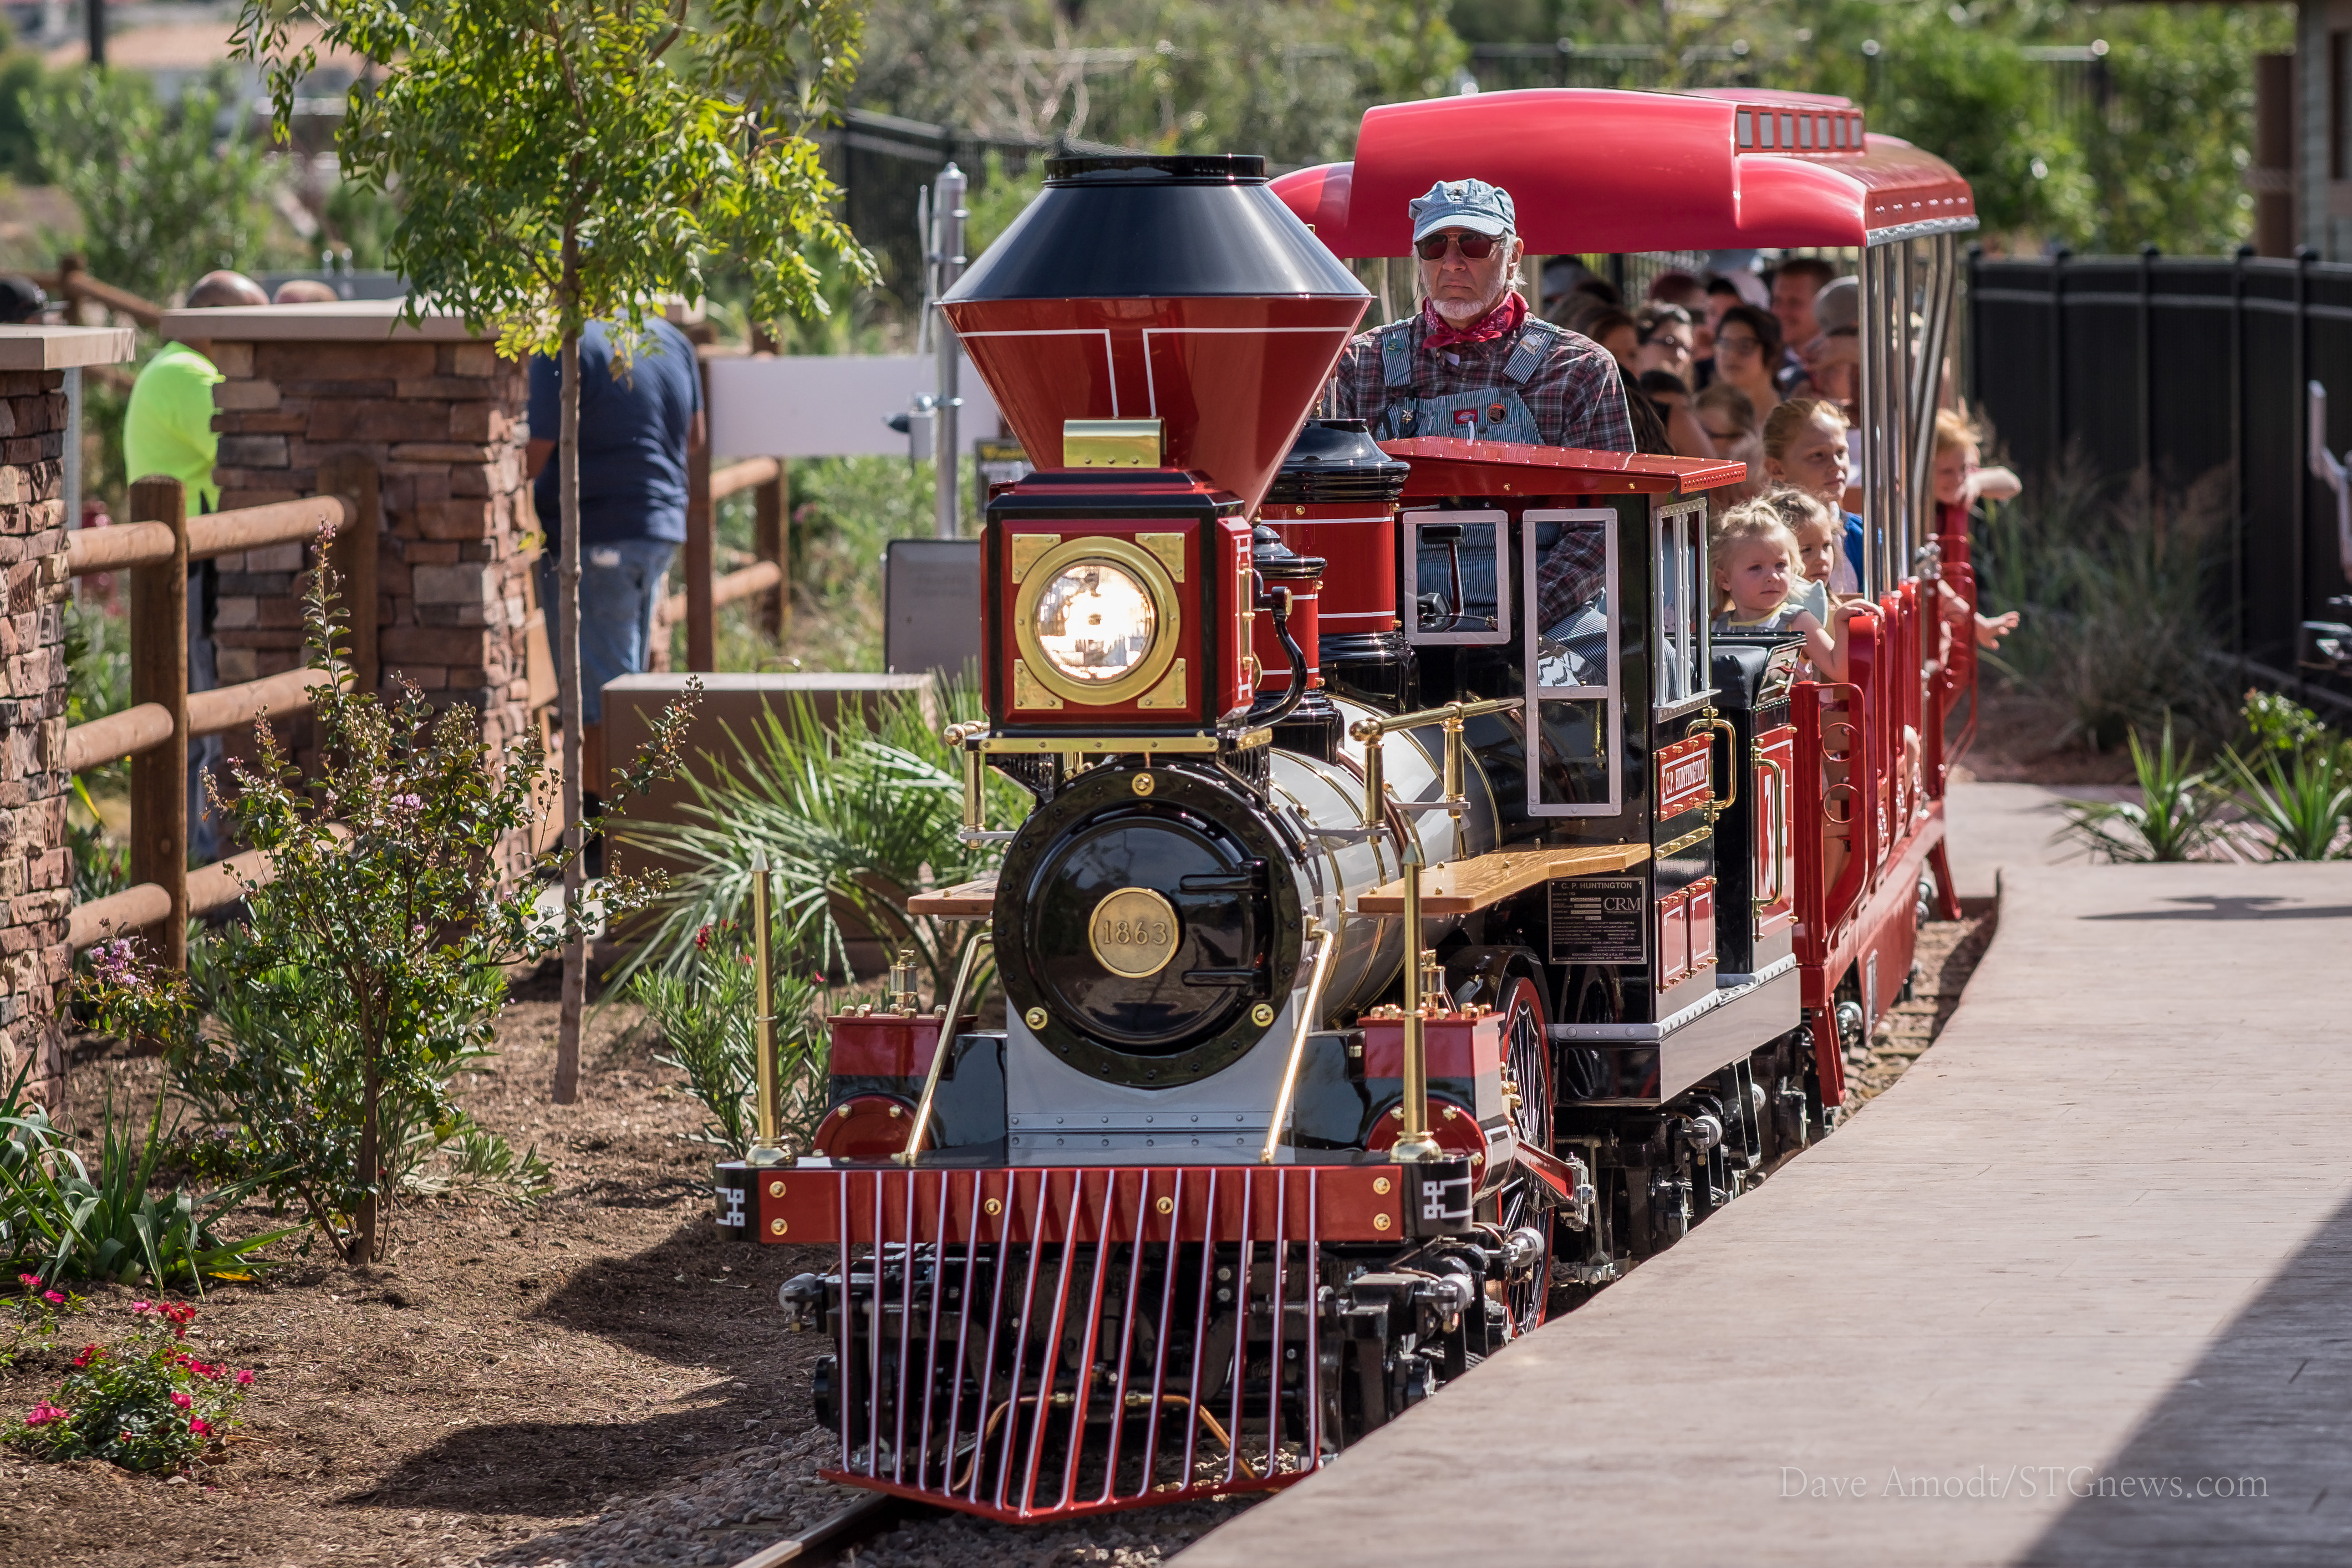 Thunder Junction opens to the public, St. George, Utah, Oct. 8, 2016 | Photo by Dave Amodt, St. George News